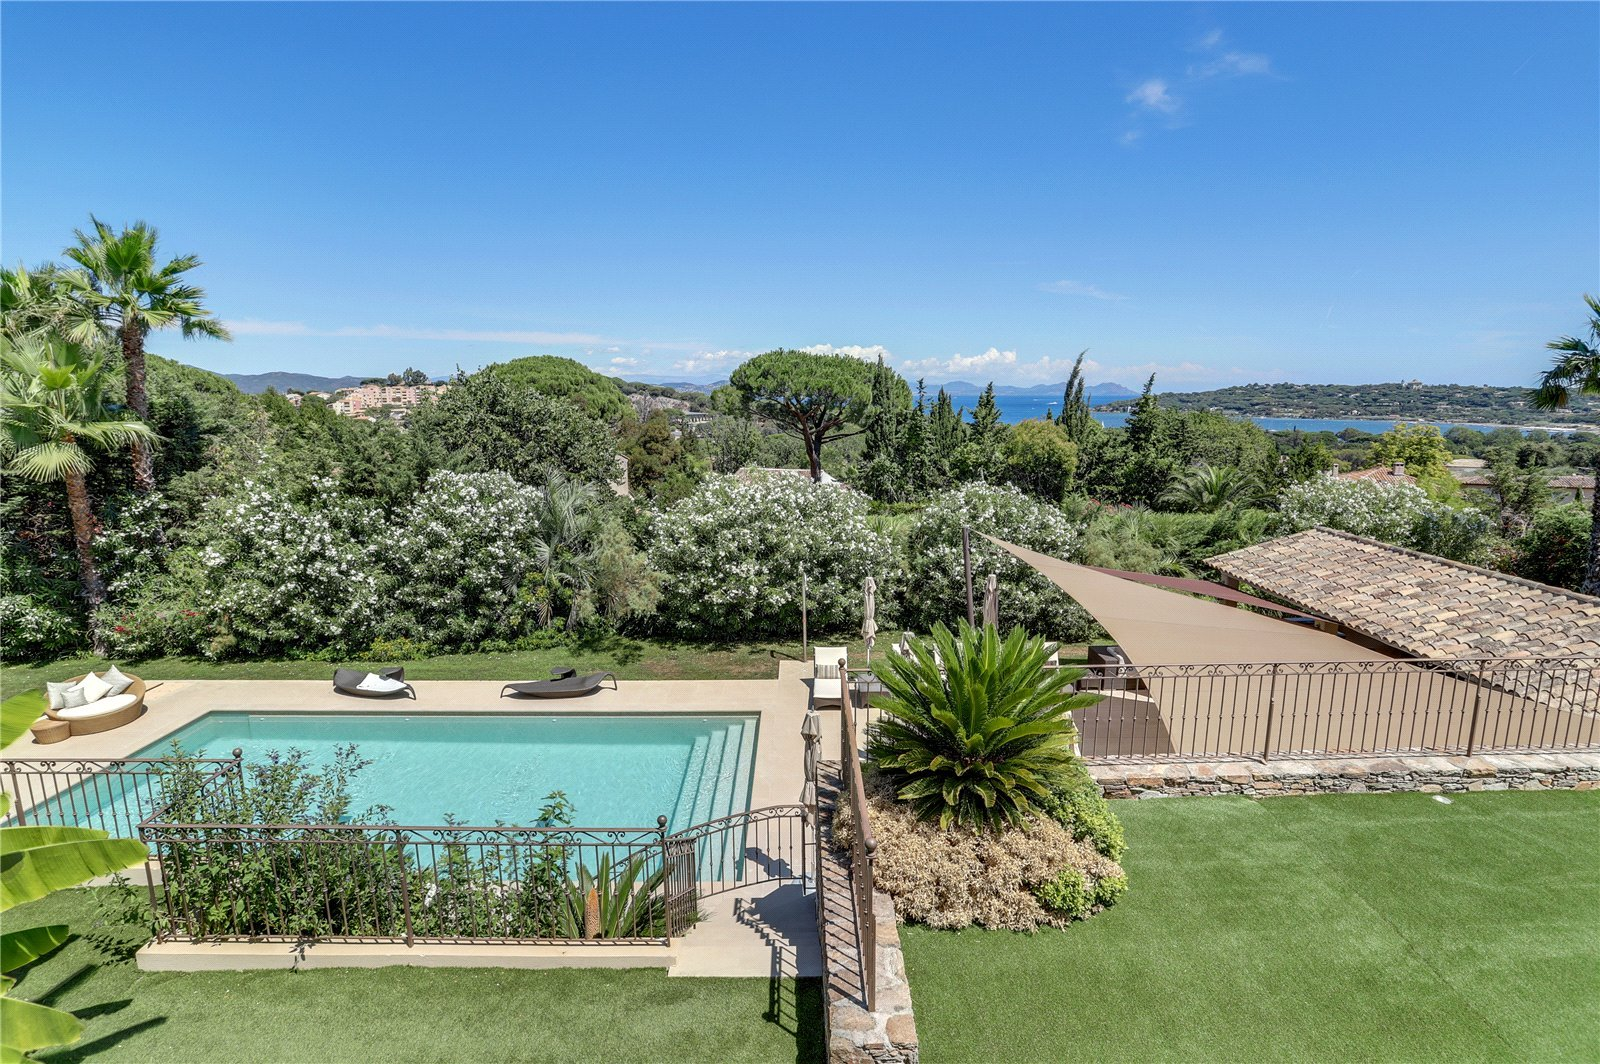 Buying Villa Saint-Tropez Lovely sea views in a sought-after area near the village